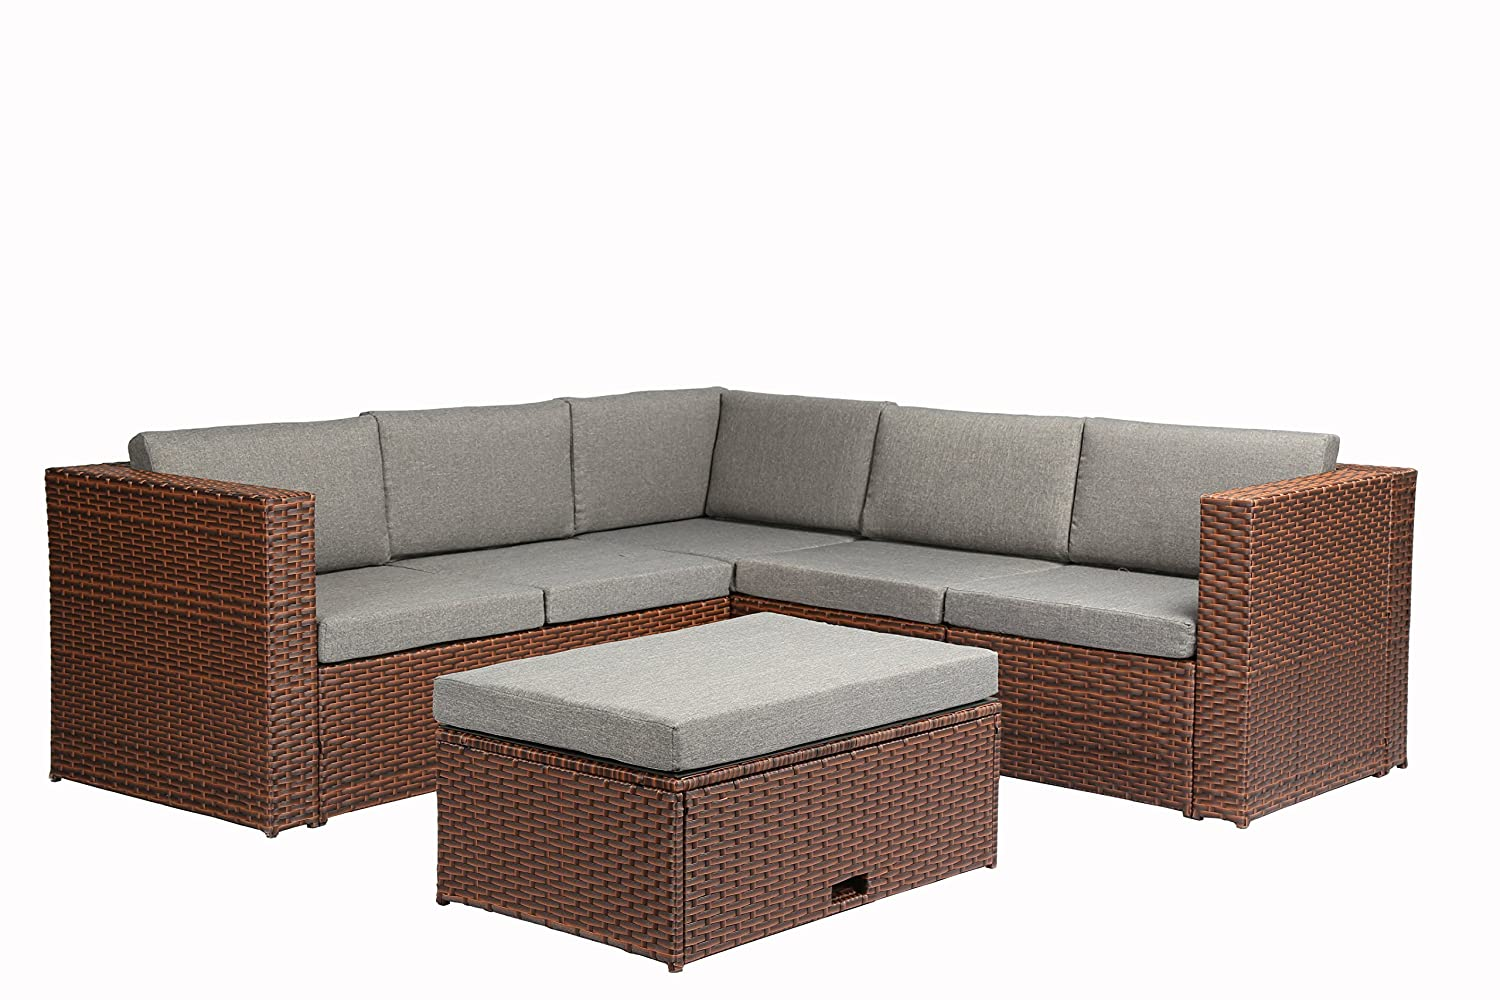 Amazon.com : Magari Furniture MAG35 BR Complete Patio Garden 4 Piece Deep  Seating Group Set With Cushion, Brown : Garden U0026 Outdoor